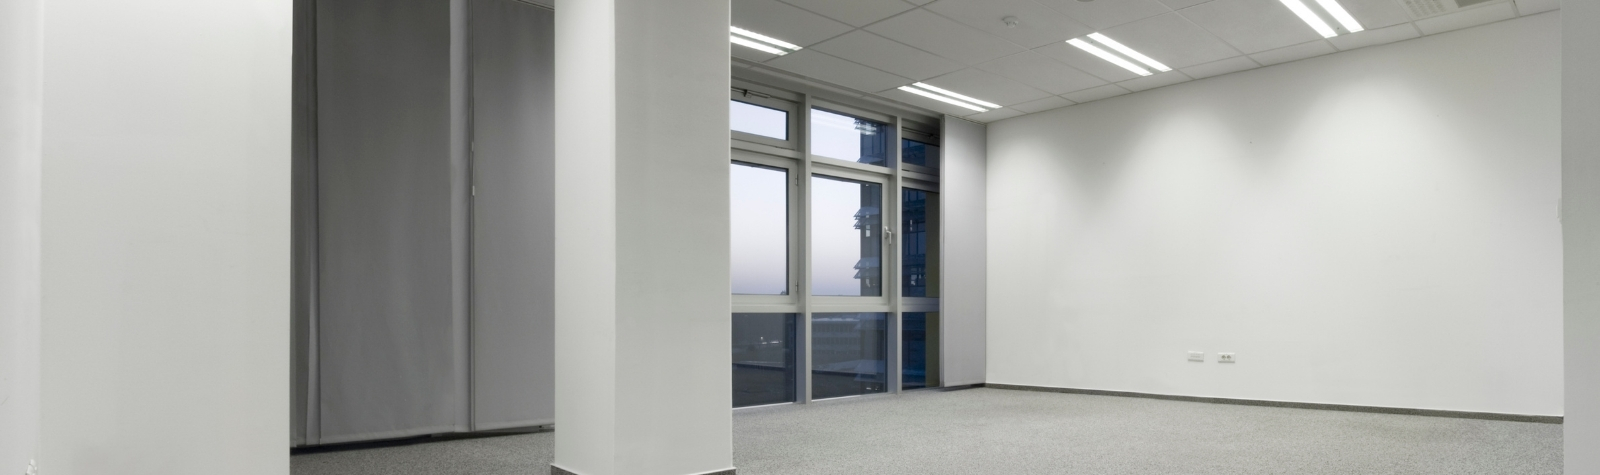 Fluorescent Lights: How are they Affecting your Employees?